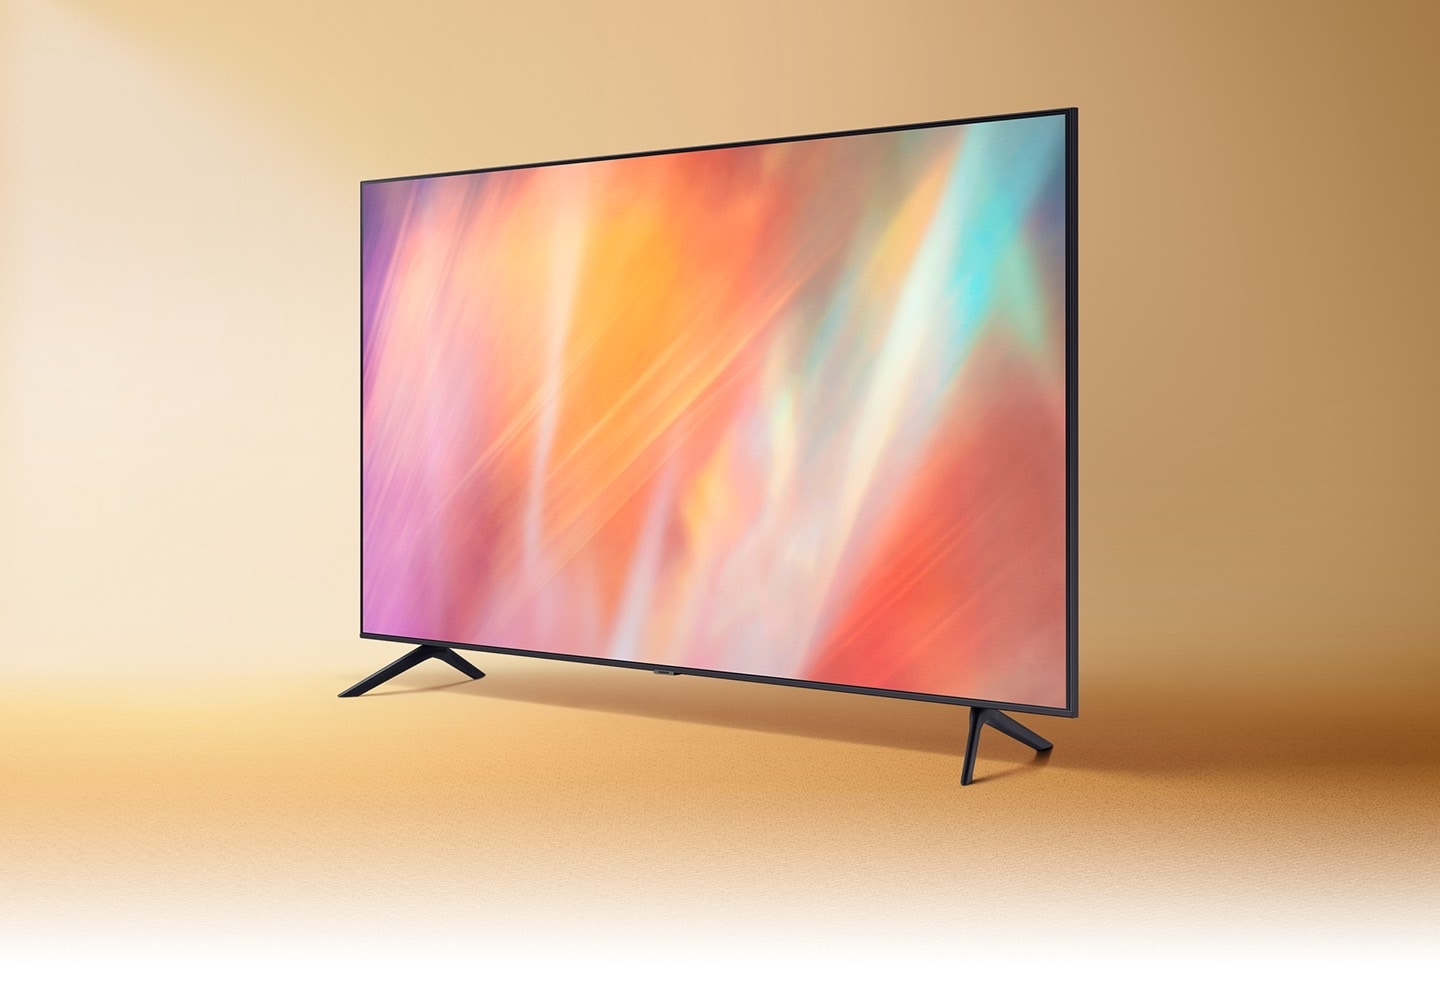 AU7000 displays intricately blended color graphics which demonstrate vivid crystal color.